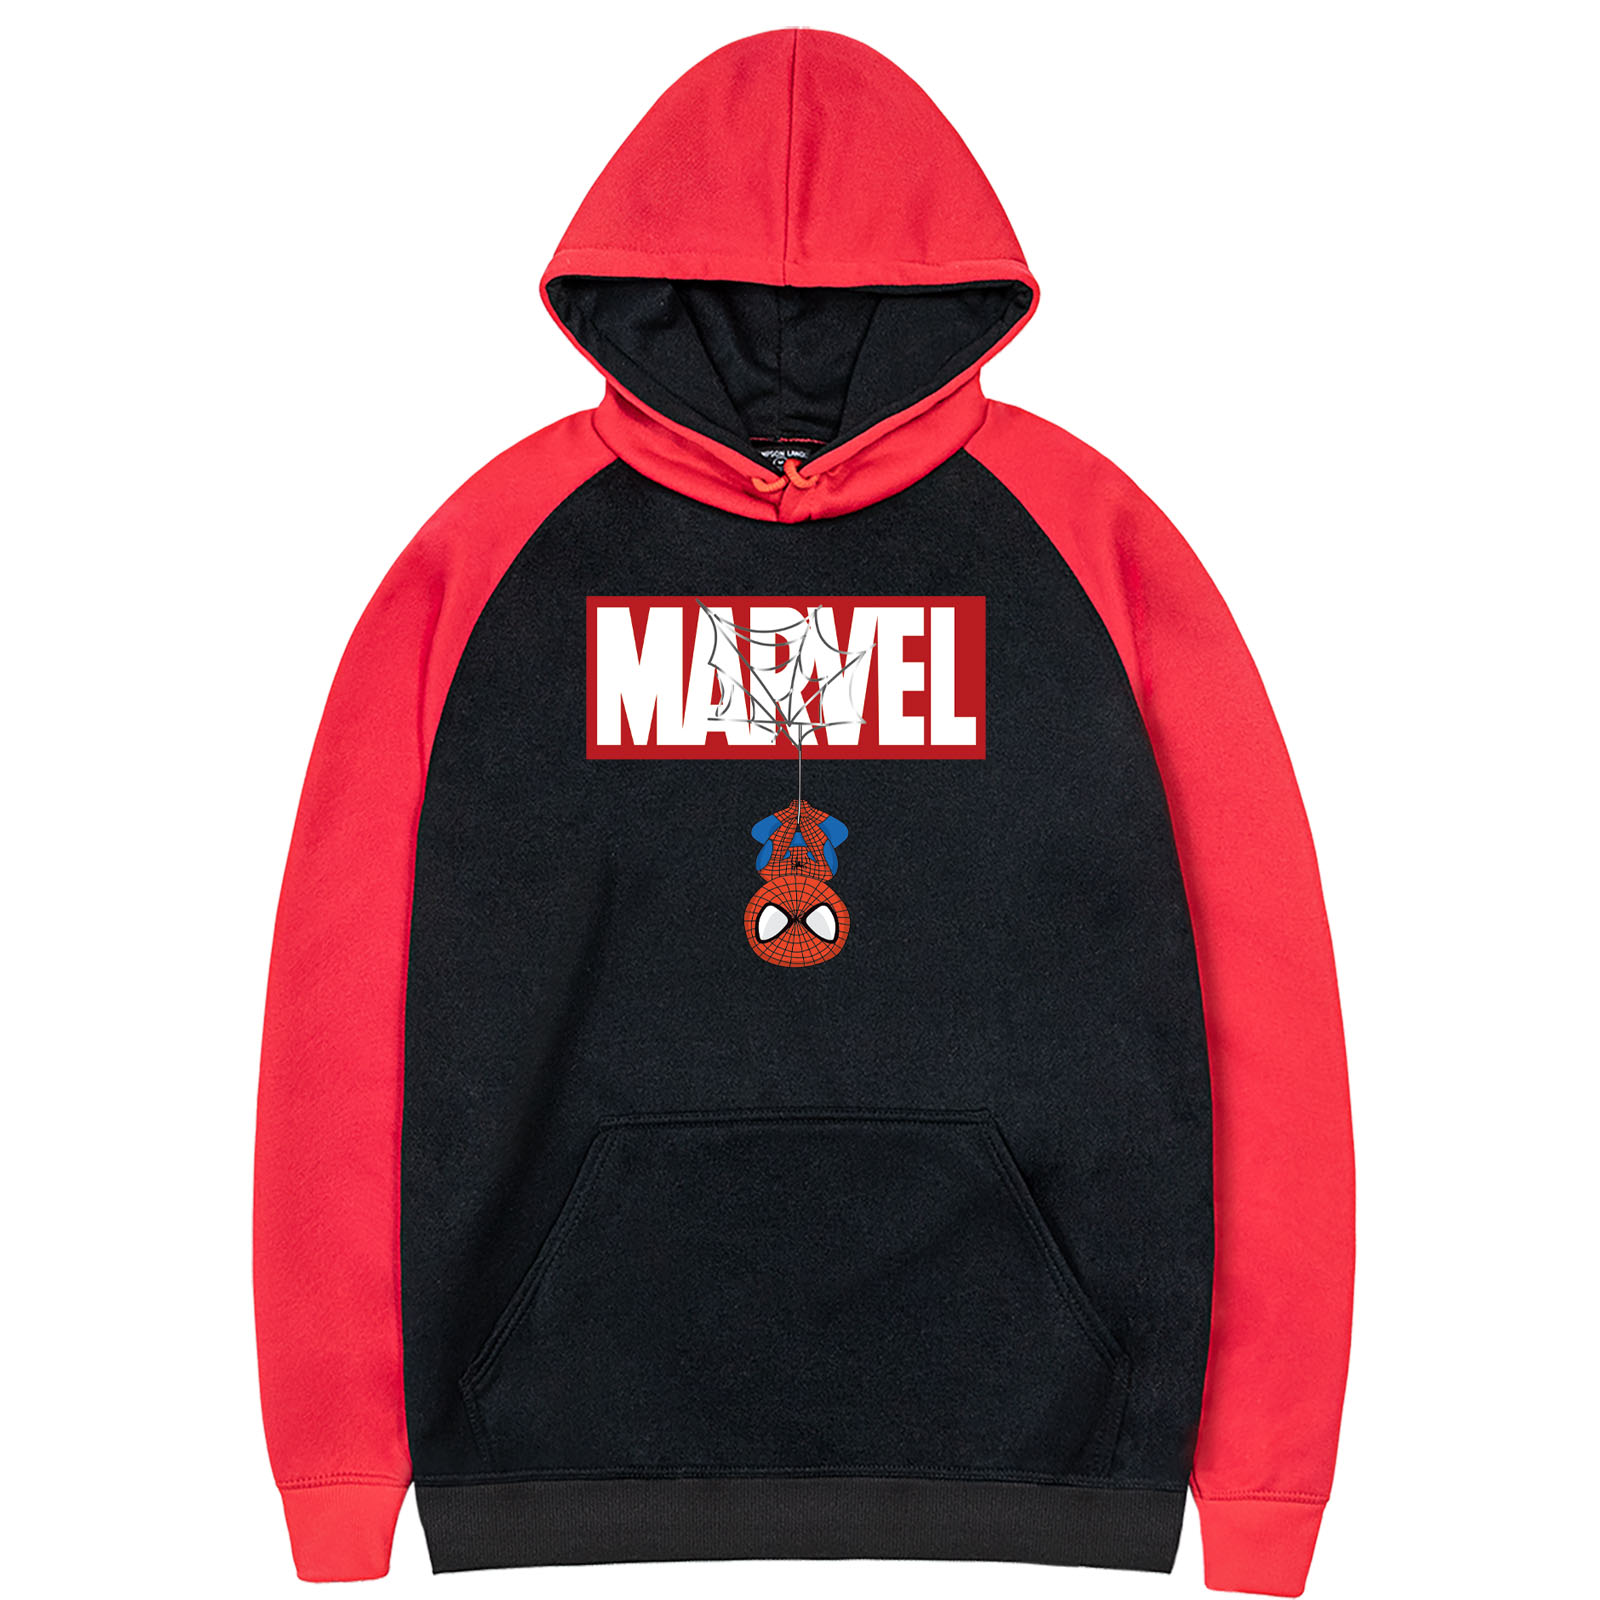 2019 New Arrival MARVEL Printed Fashion Design Spider Man Hero Raglam Hoodies Fleece Warm Cute Hoodie Red Hooded Male Sportswear